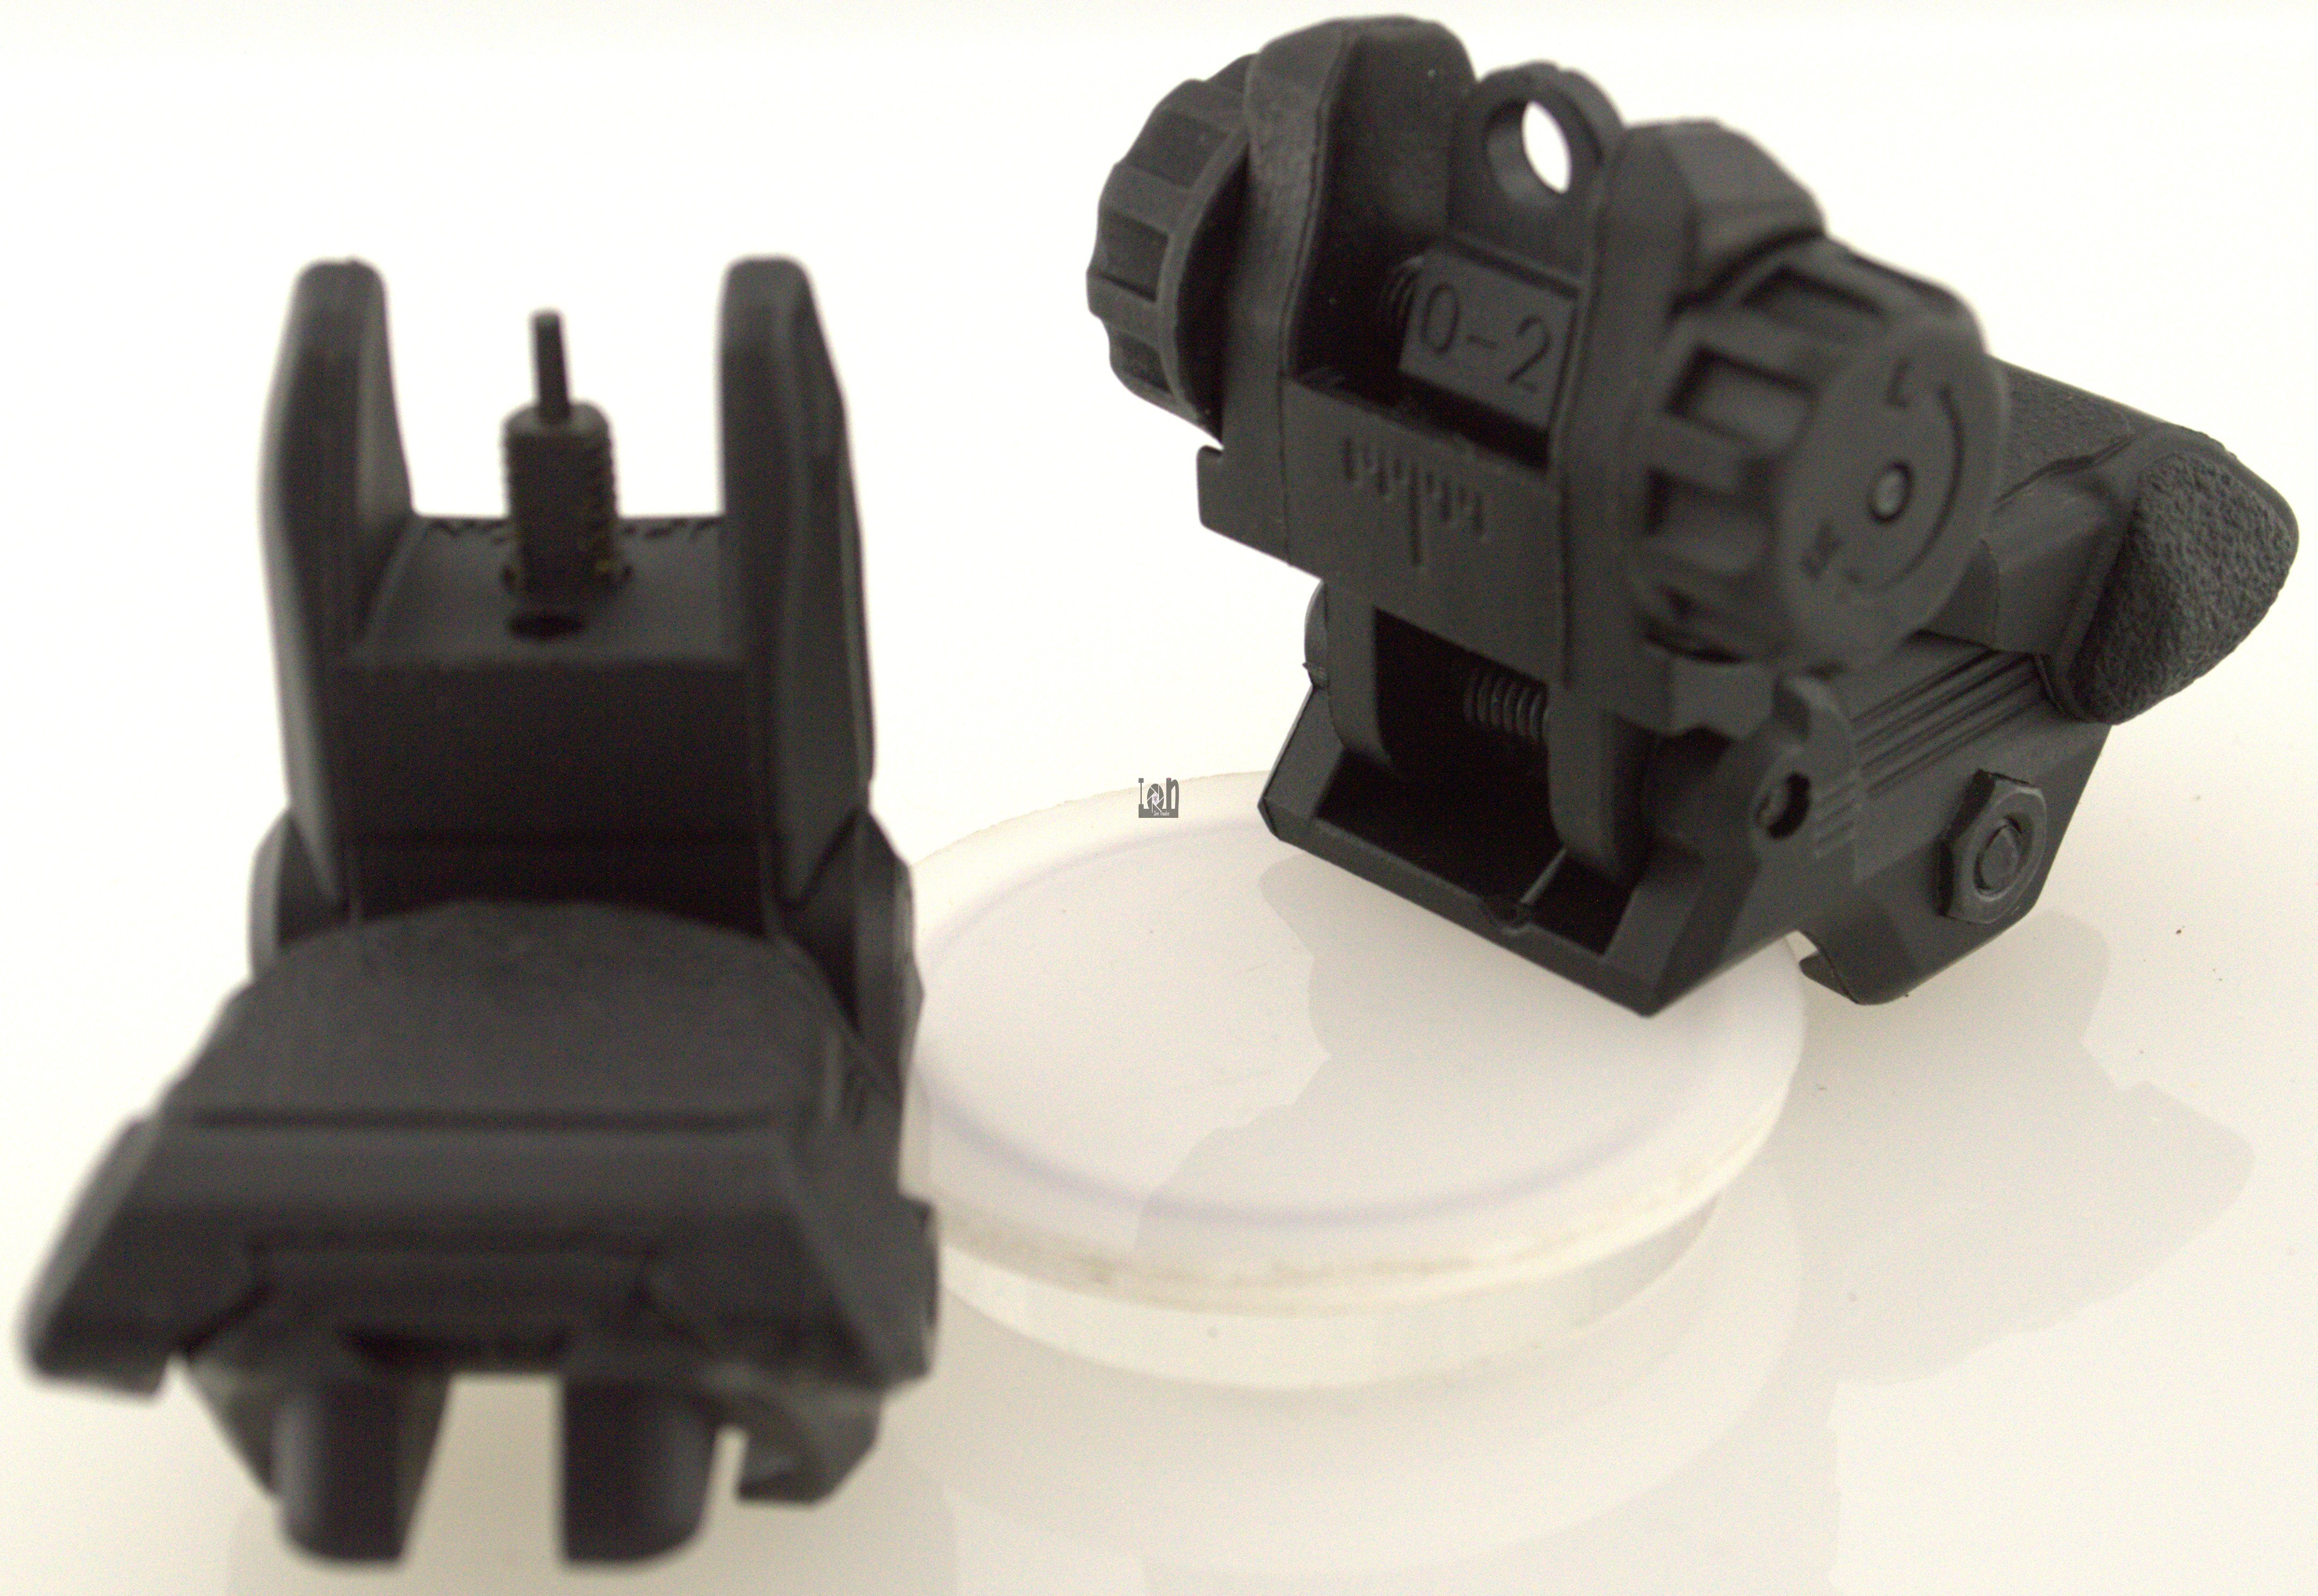 Folding Front Rear Back Up Iron Sights BUIS Flip Up